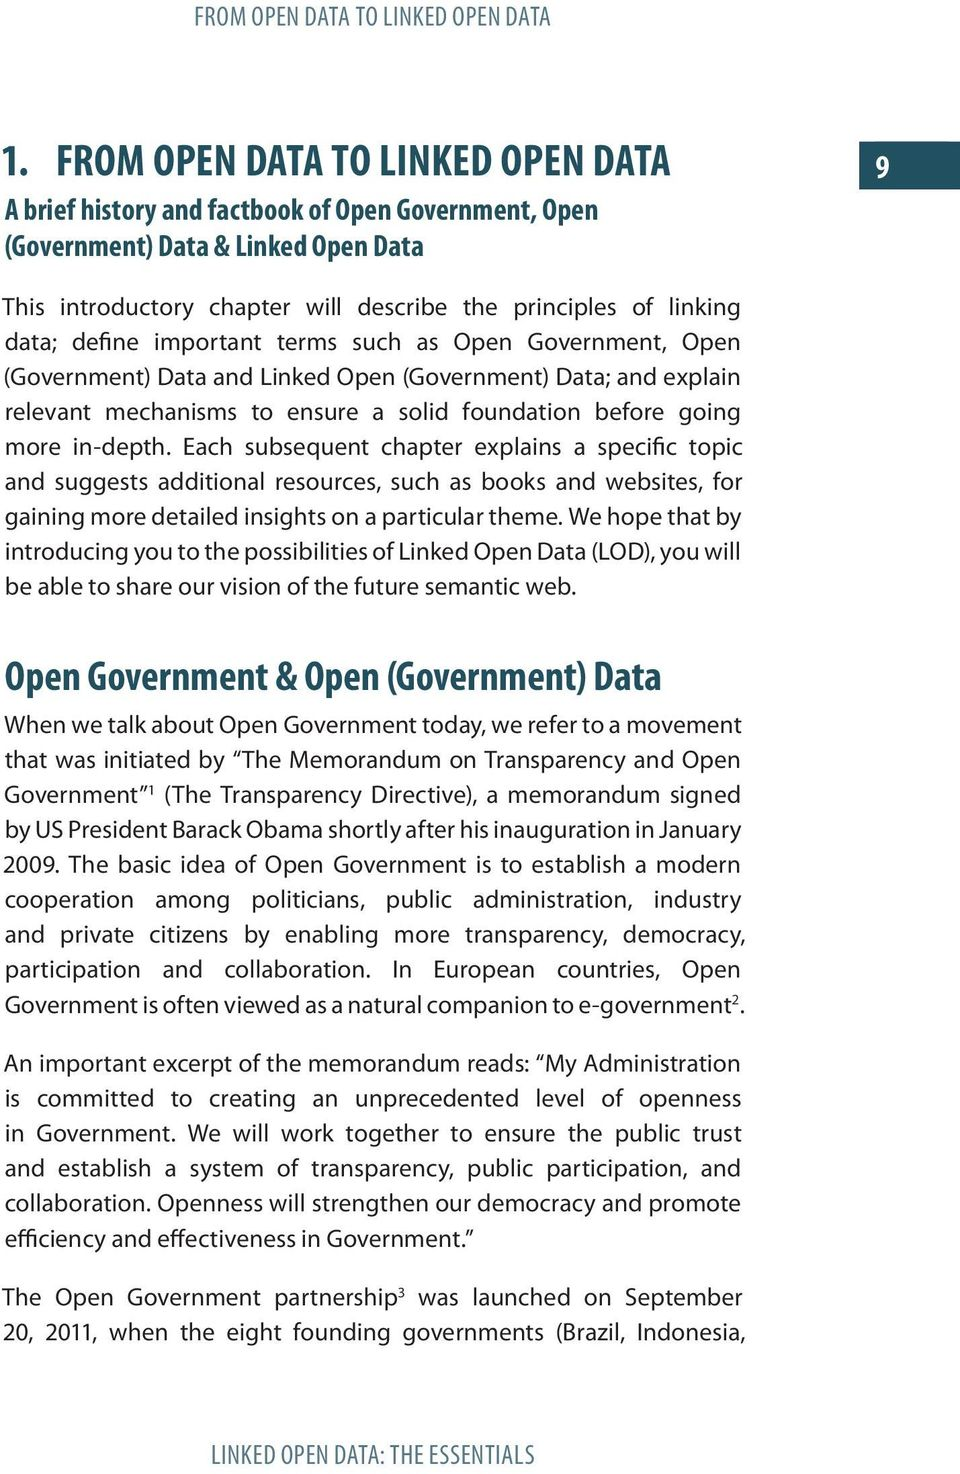 define important terms such as Open Government, Open (Government) Data and Linked Open (Government) Data; and explain relevant mechanisms to ensure a solid foundation before going more in-depth.